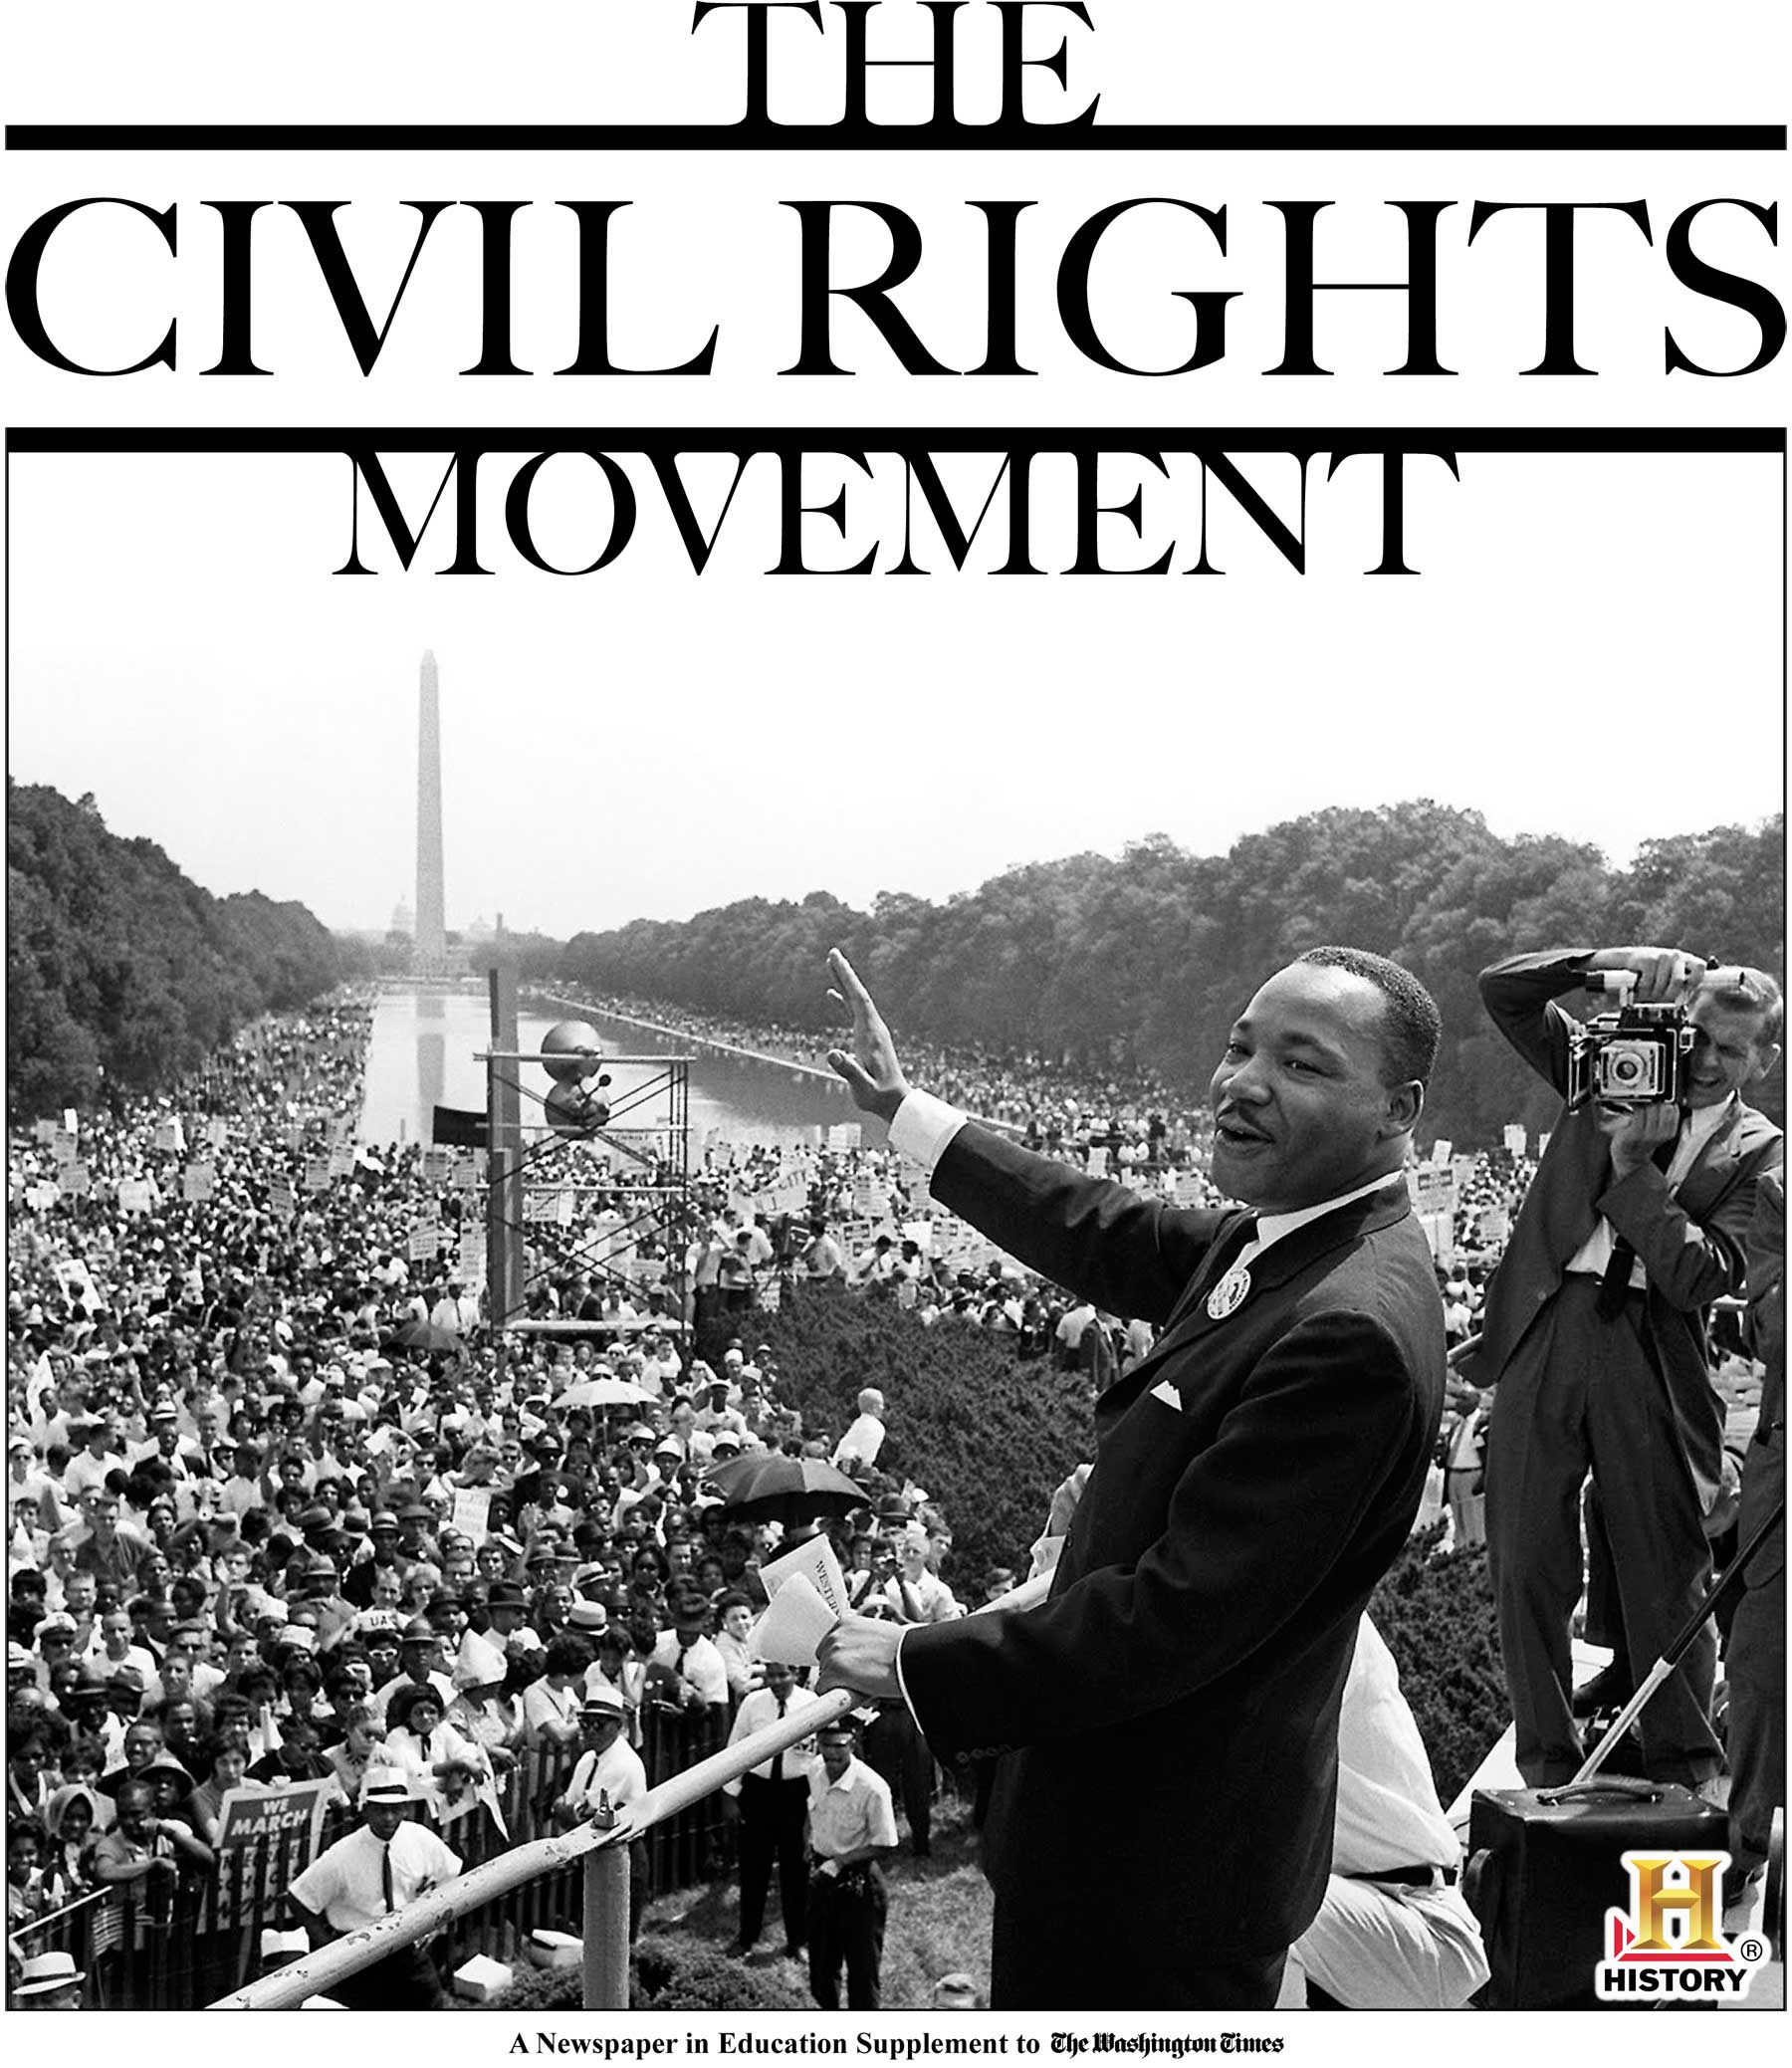 an analysis of the civil rights movement in the united states and the importance of martin luther ki The genesis of civil disobedience and the civil rights movement in the united states history 1,709 words 4 pages an argument in justification of civil disobedience.